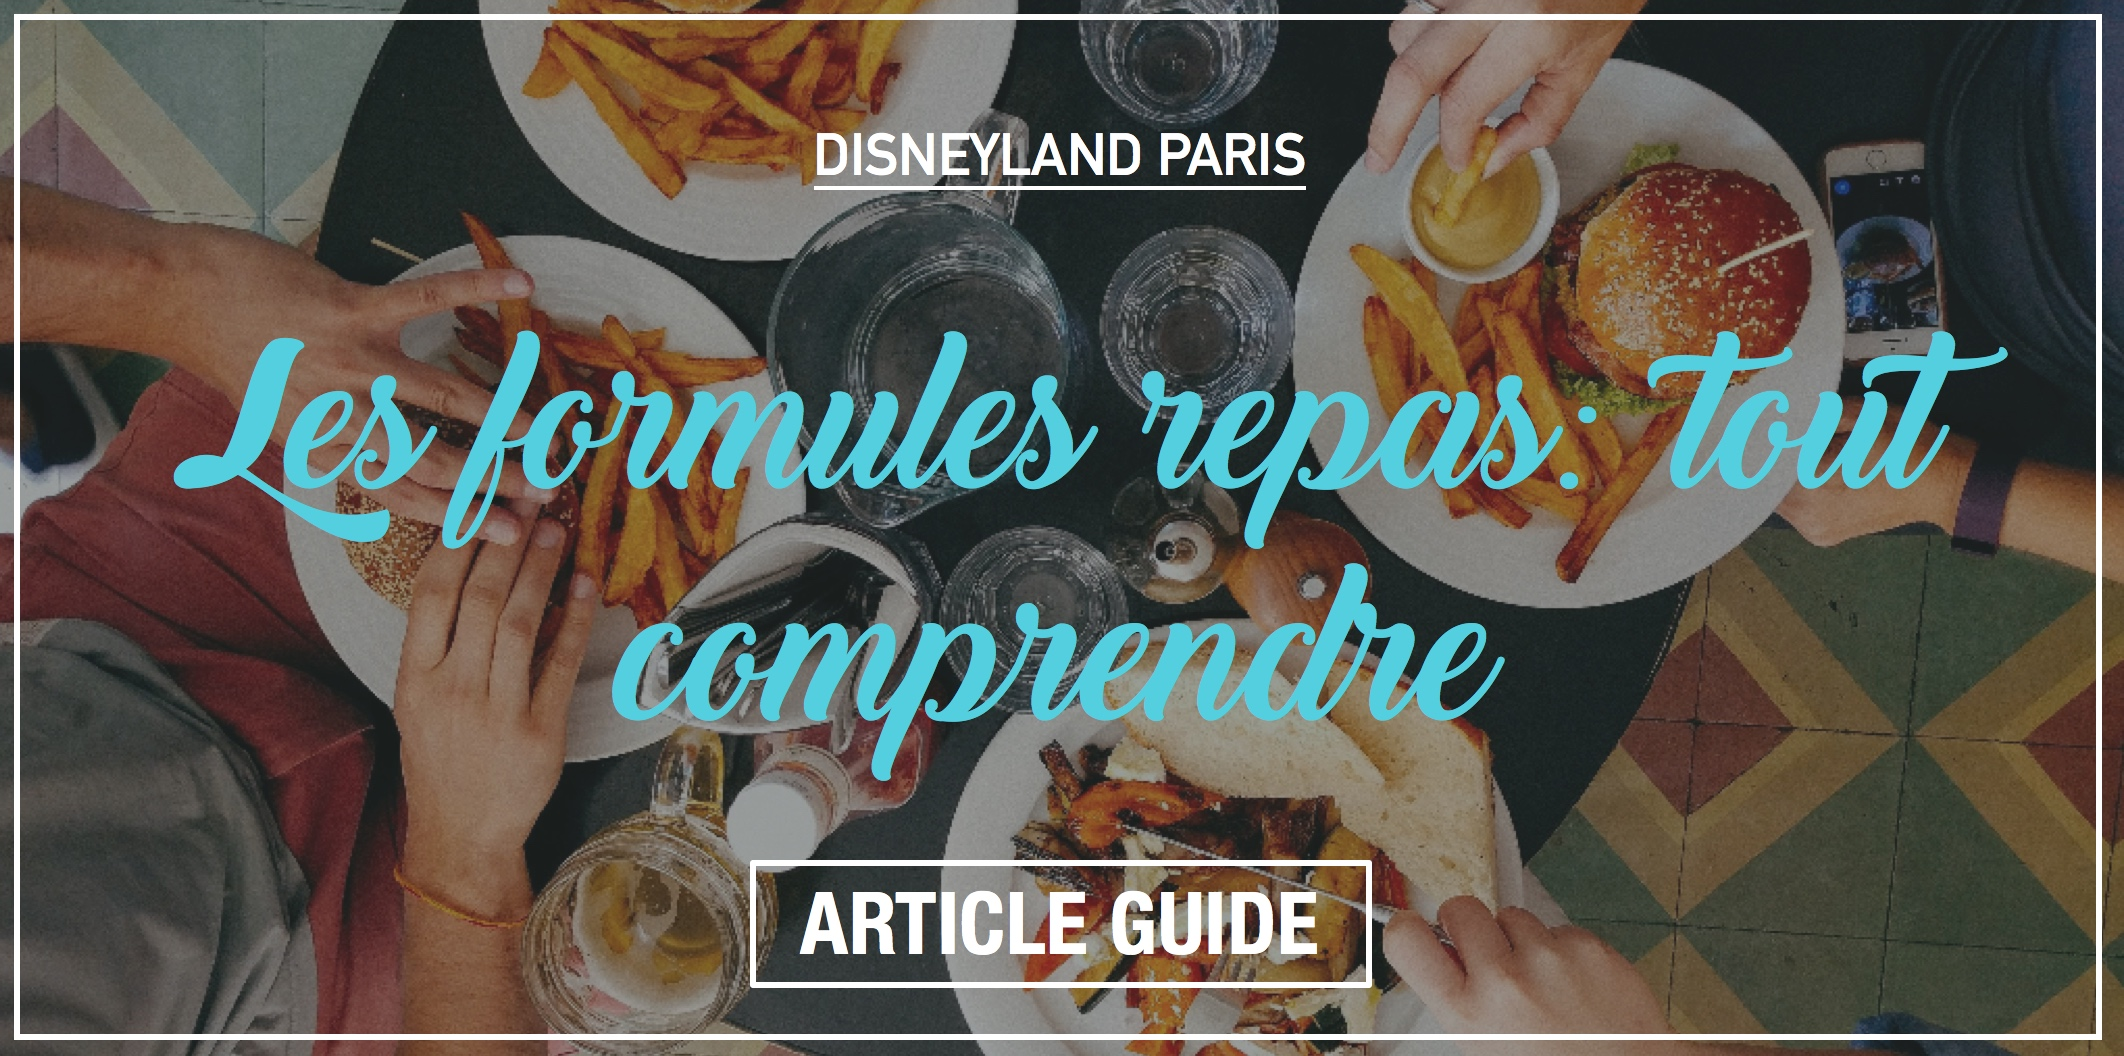 formules repas disneyland paris article guide tout comprendre demi pension complete